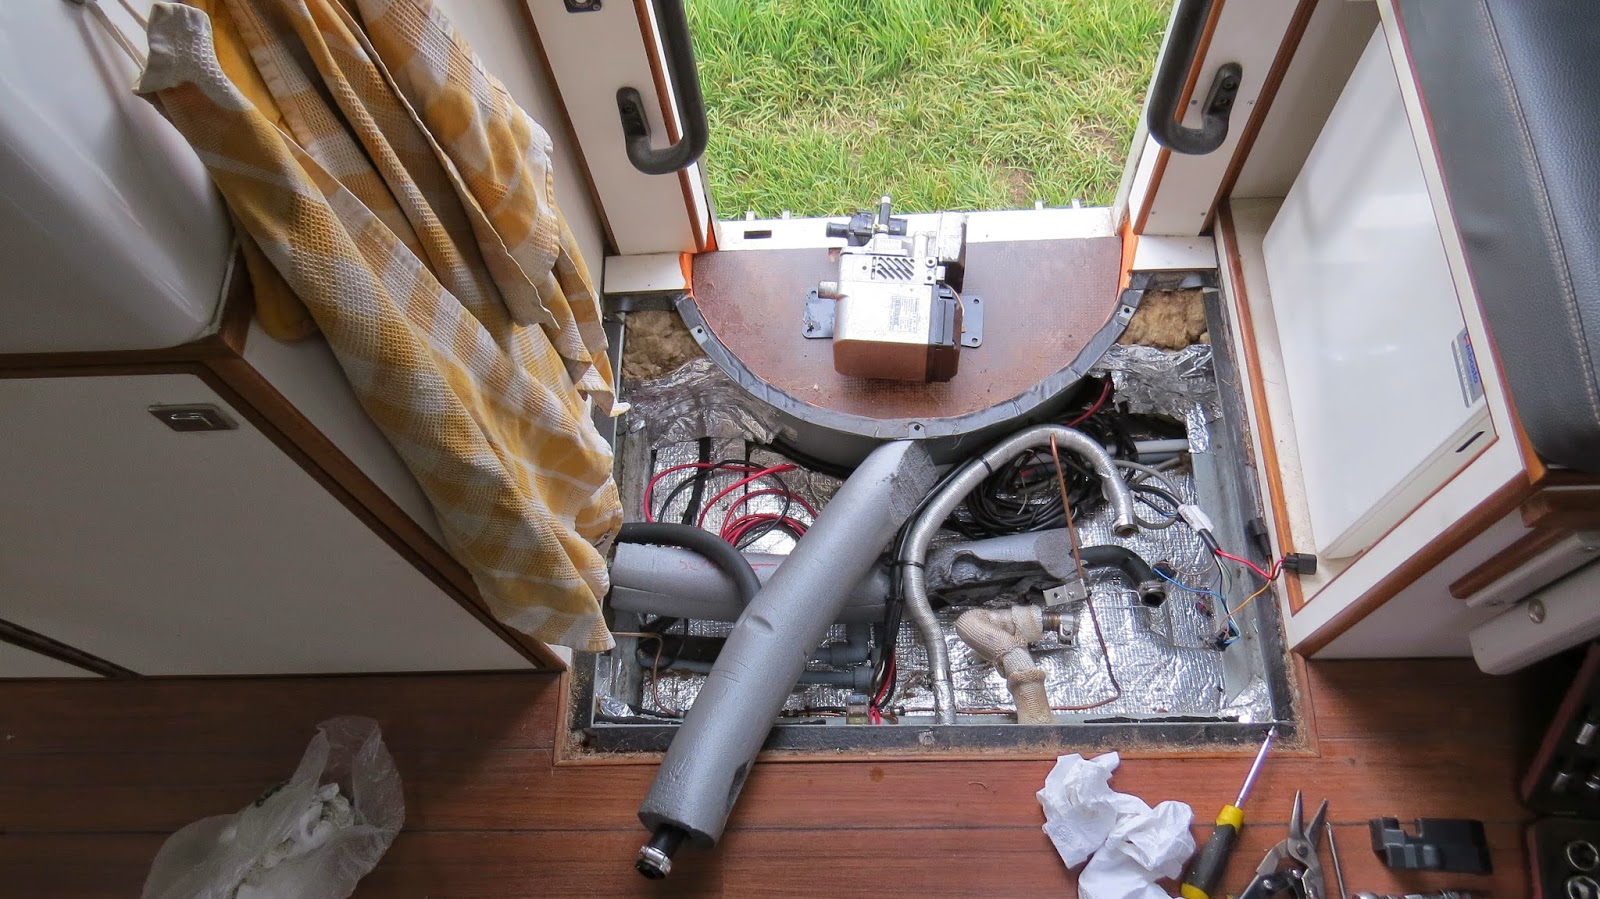 The space left after removing the Webasto Thermo 50 from Jim the overland motorhome for a service